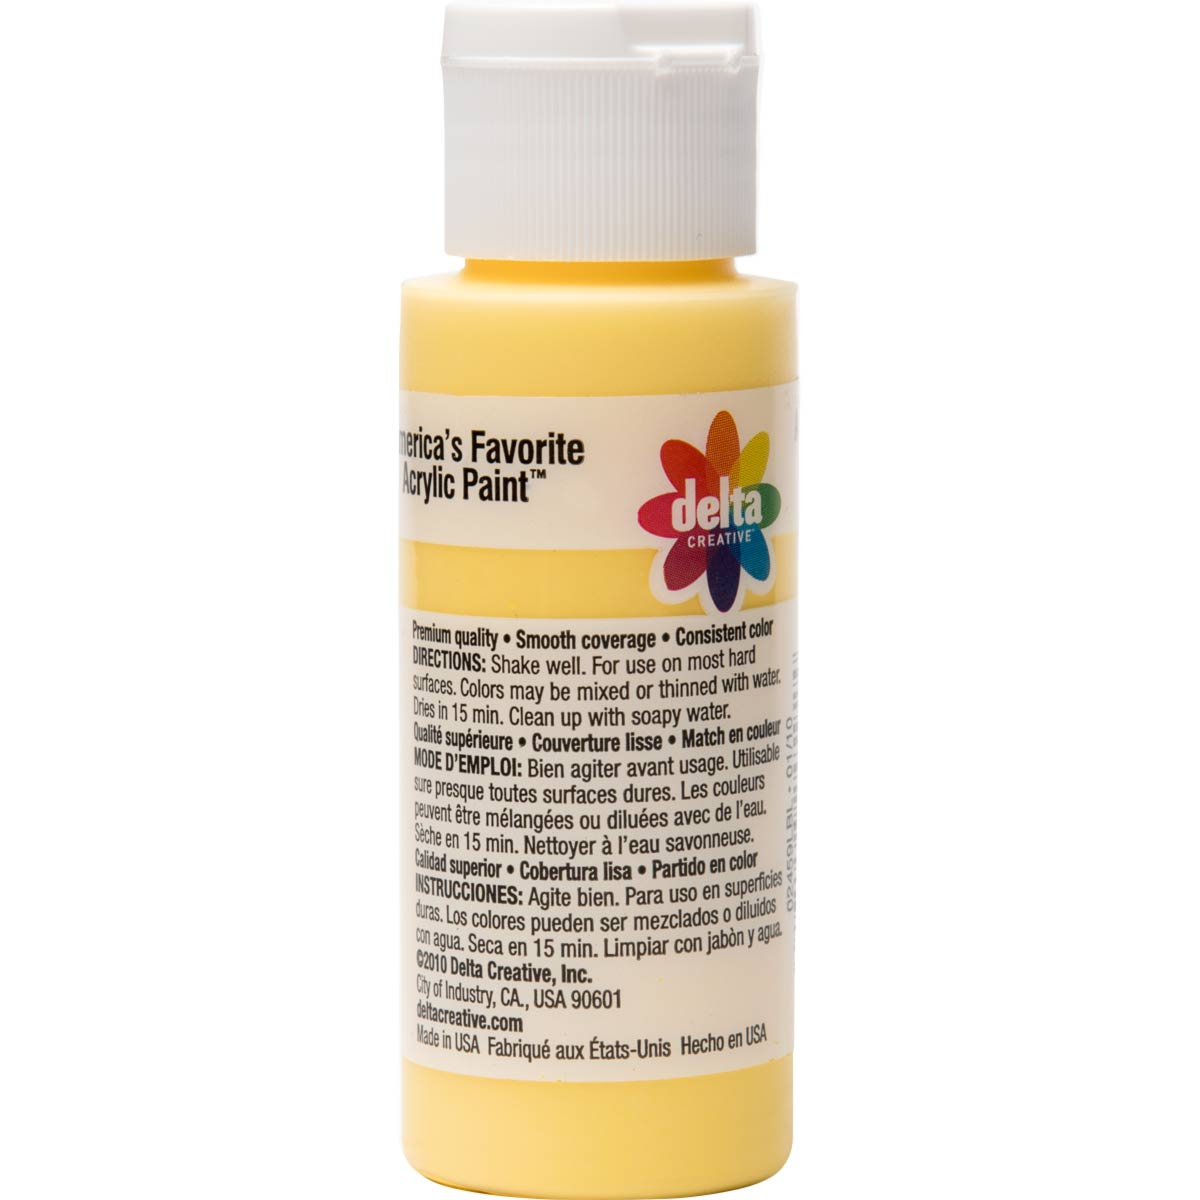 Delta Ceramcoat ® Acrylic Paint - Crocus Yellow, 2 oz. - 024590202W